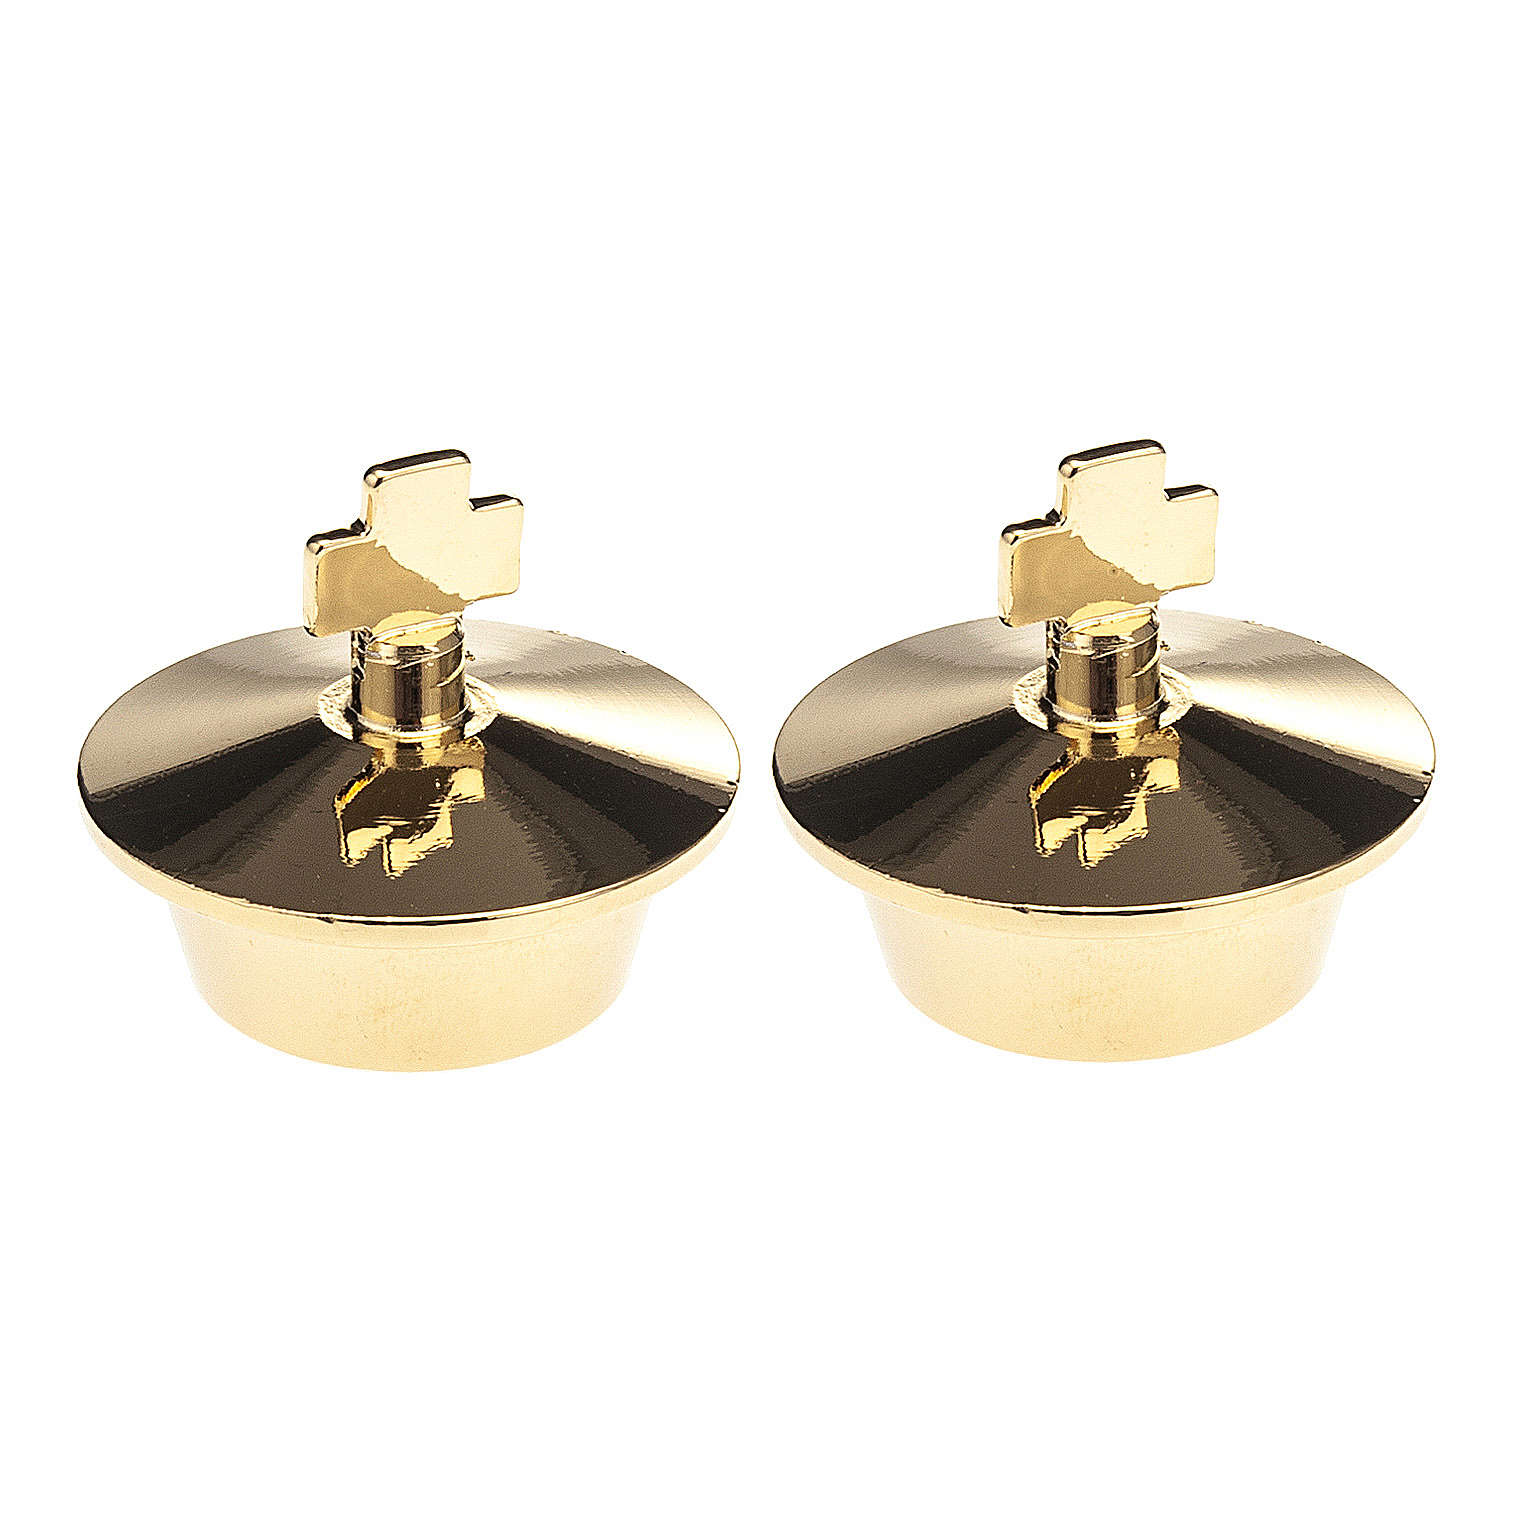 Replacement lids for glass cruet set for mass, pairs 4